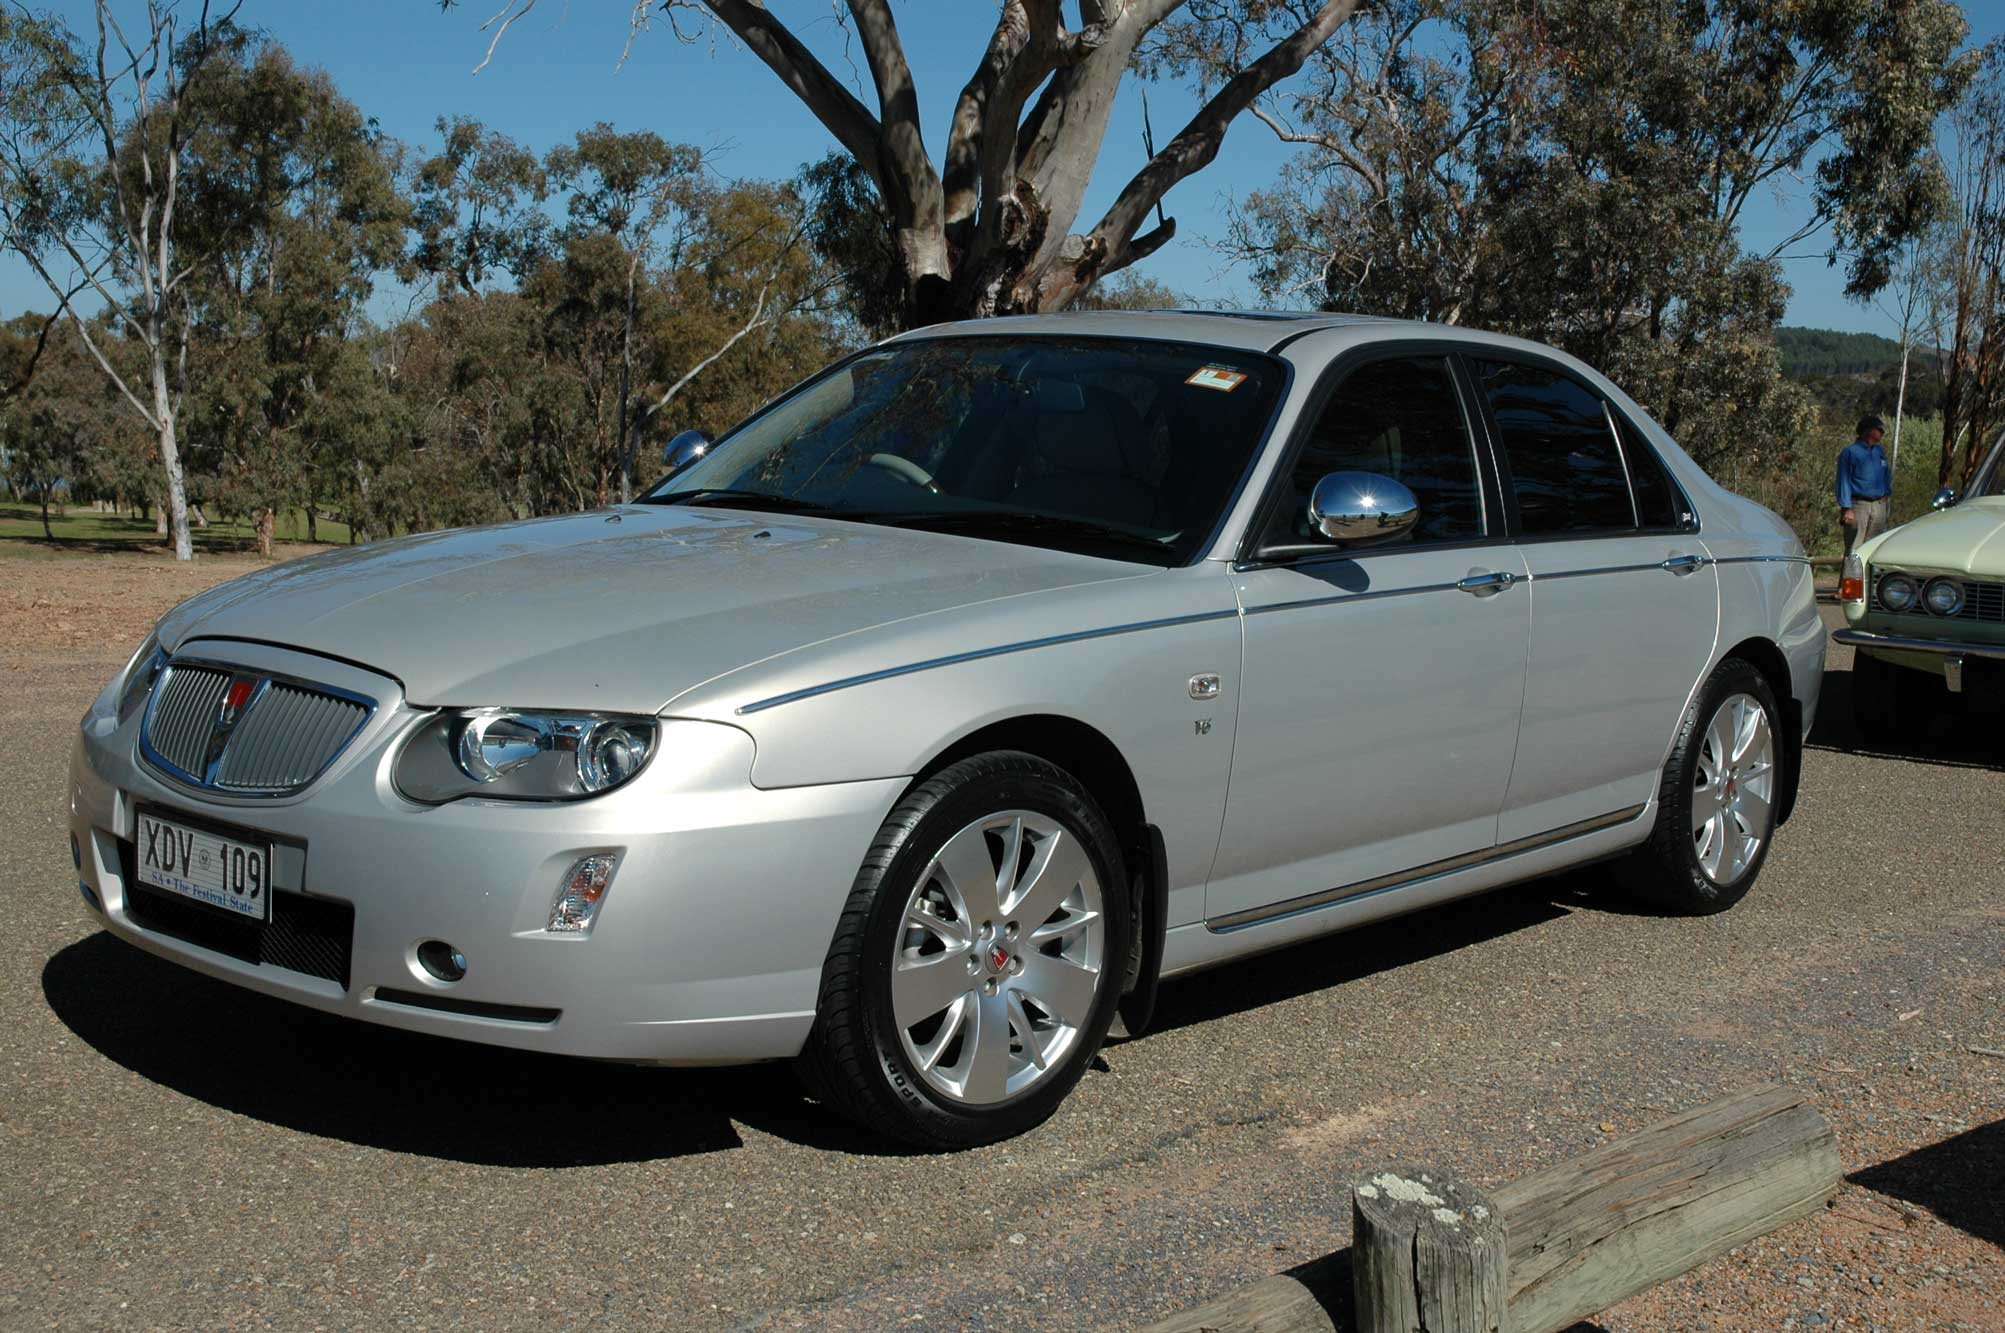 2006 rover 75 photos informations articles. Black Bedroom Furniture Sets. Home Design Ideas